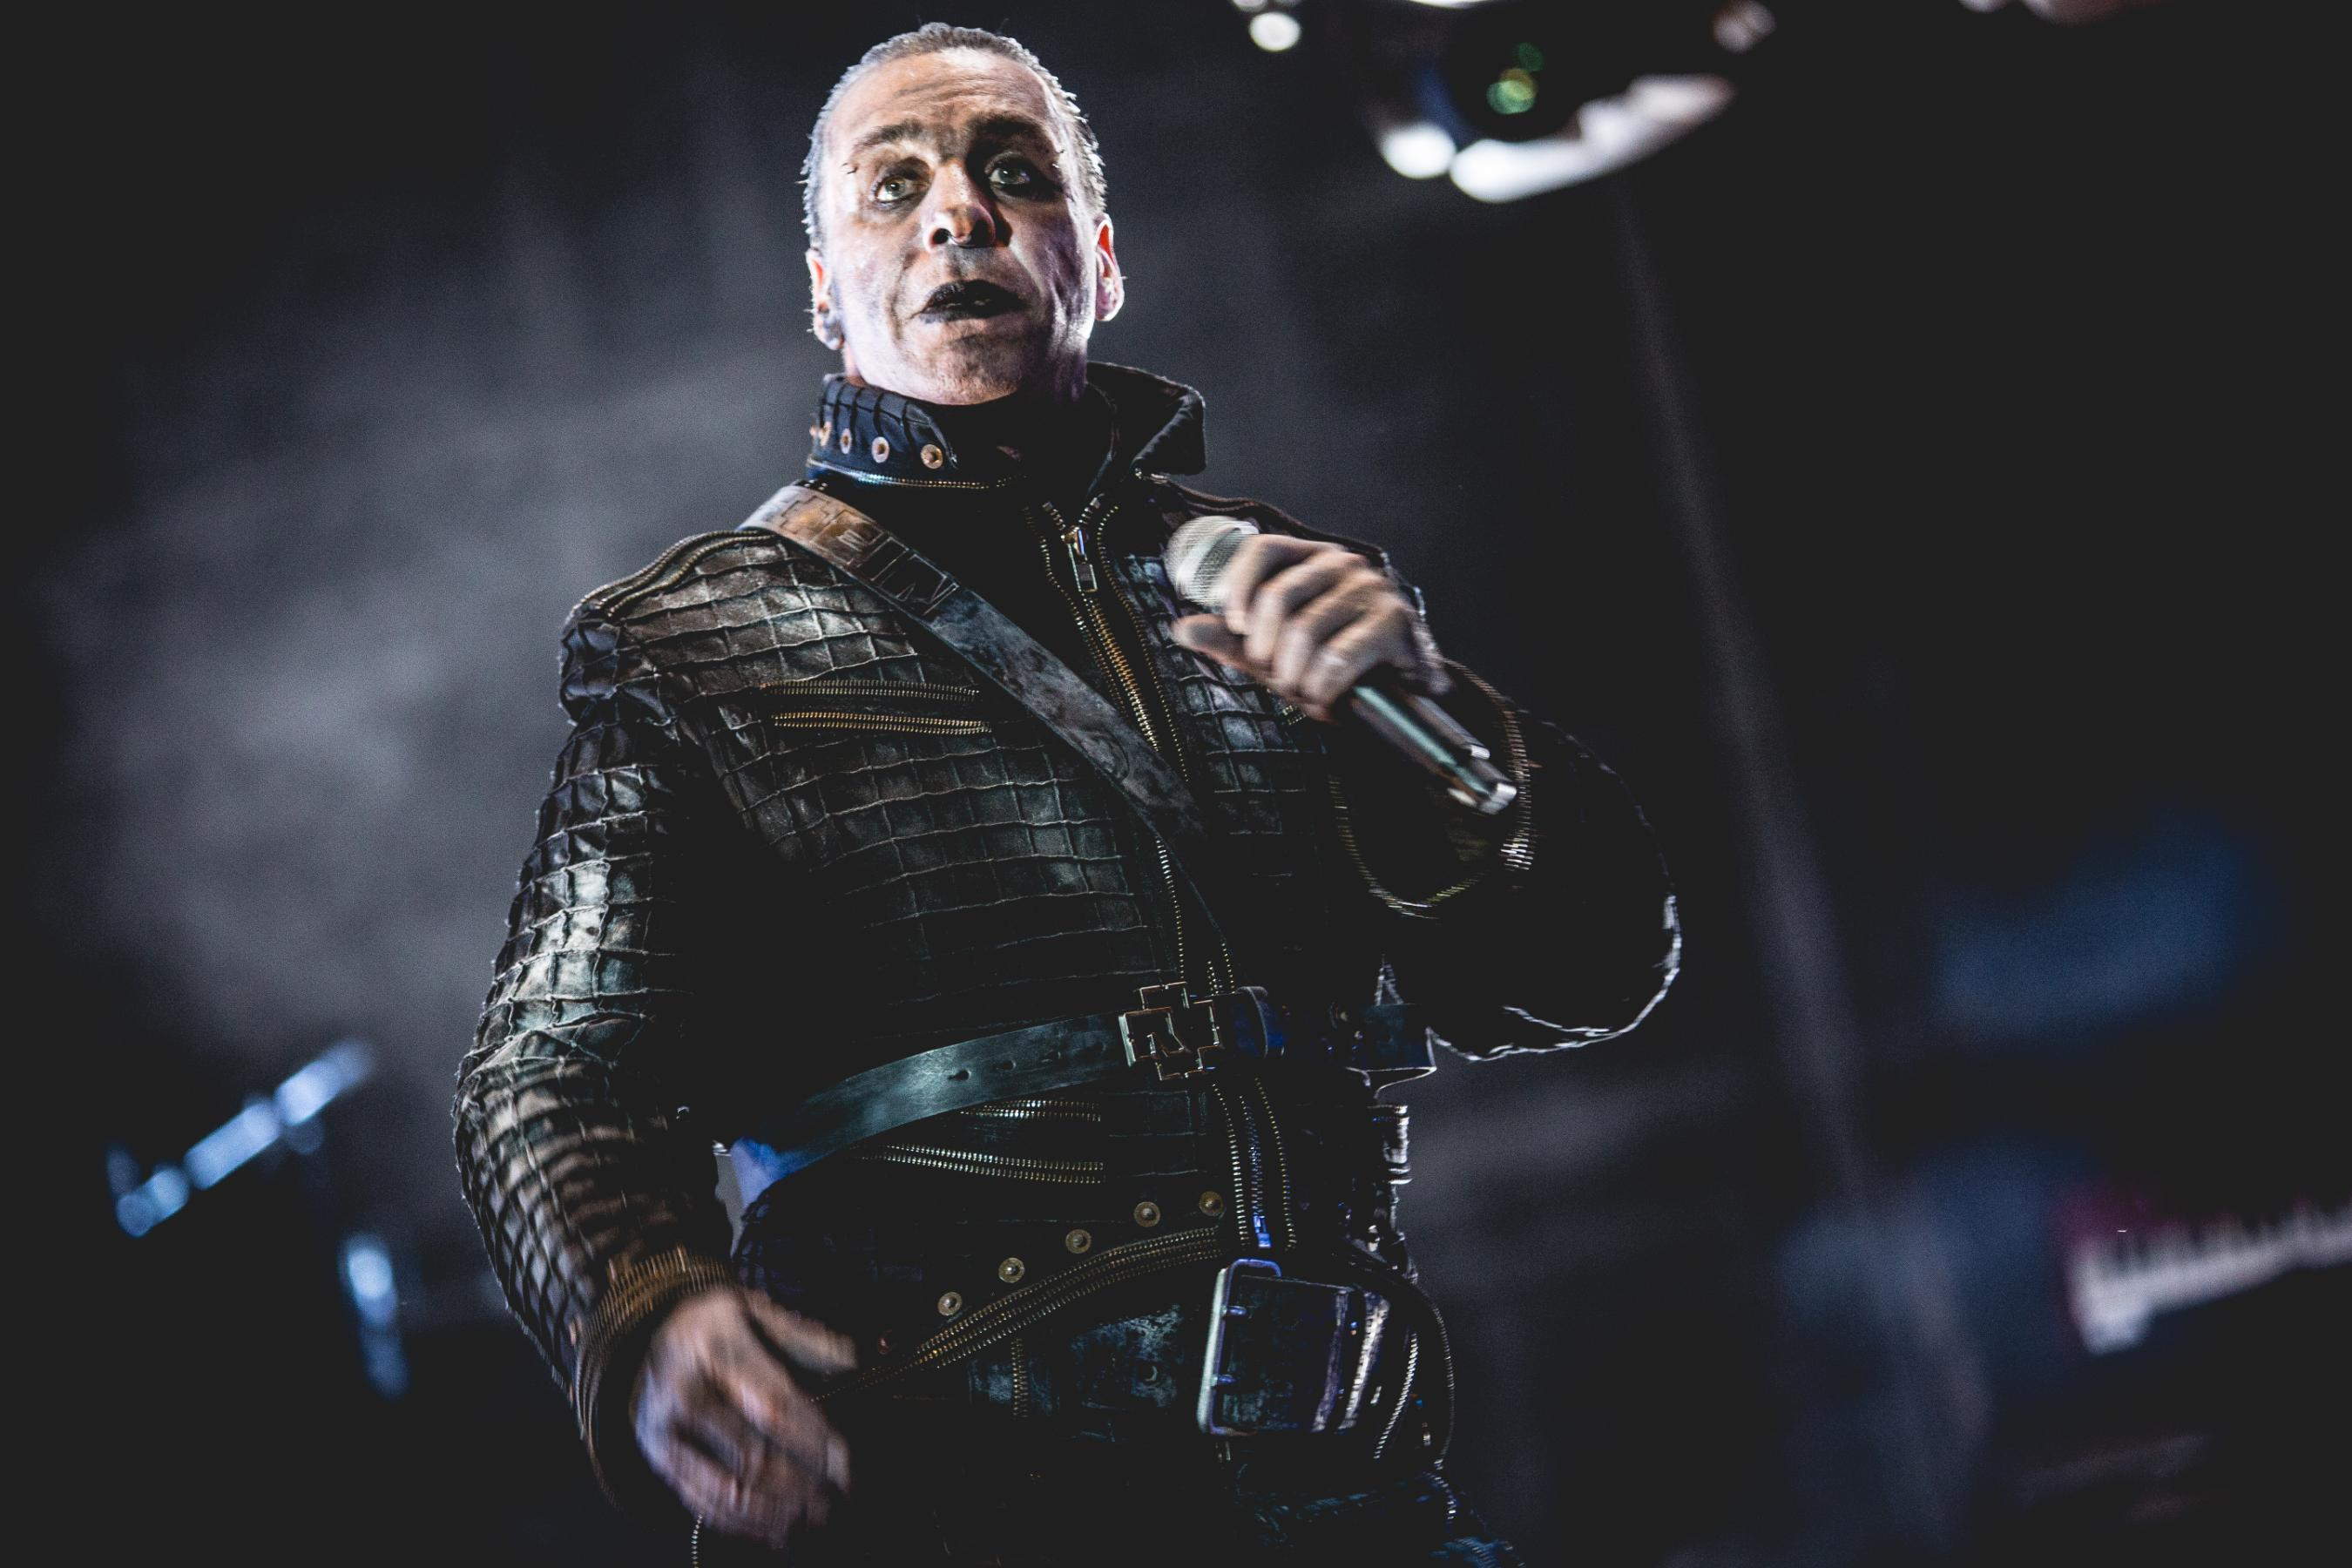 Rammstein hints at 2020 North American tour